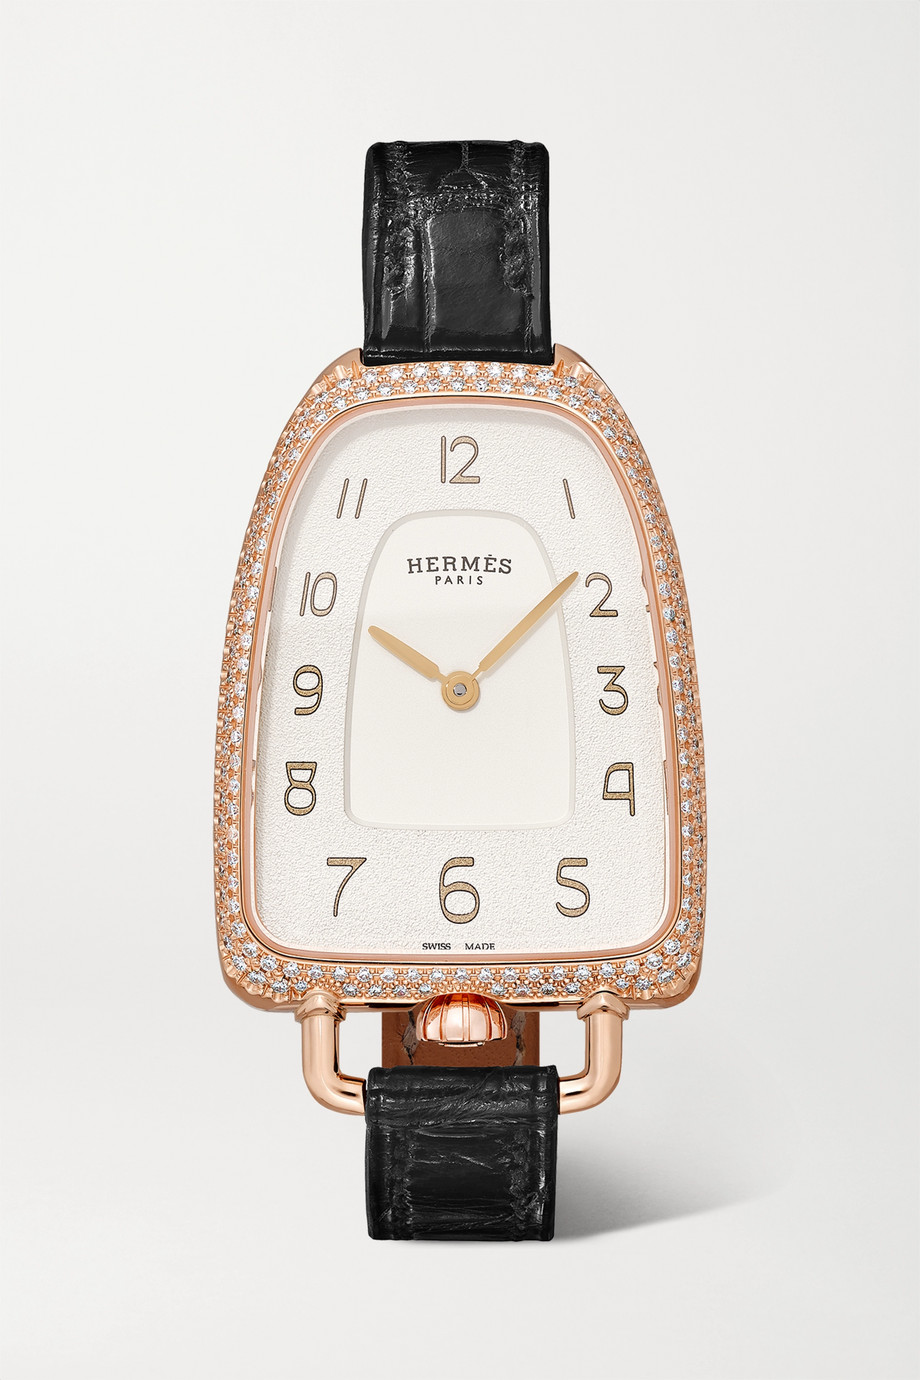 Hermès Timepieces Galop d'Hermès 26mm medium 18-karat rose gold, alligator and diamond watch